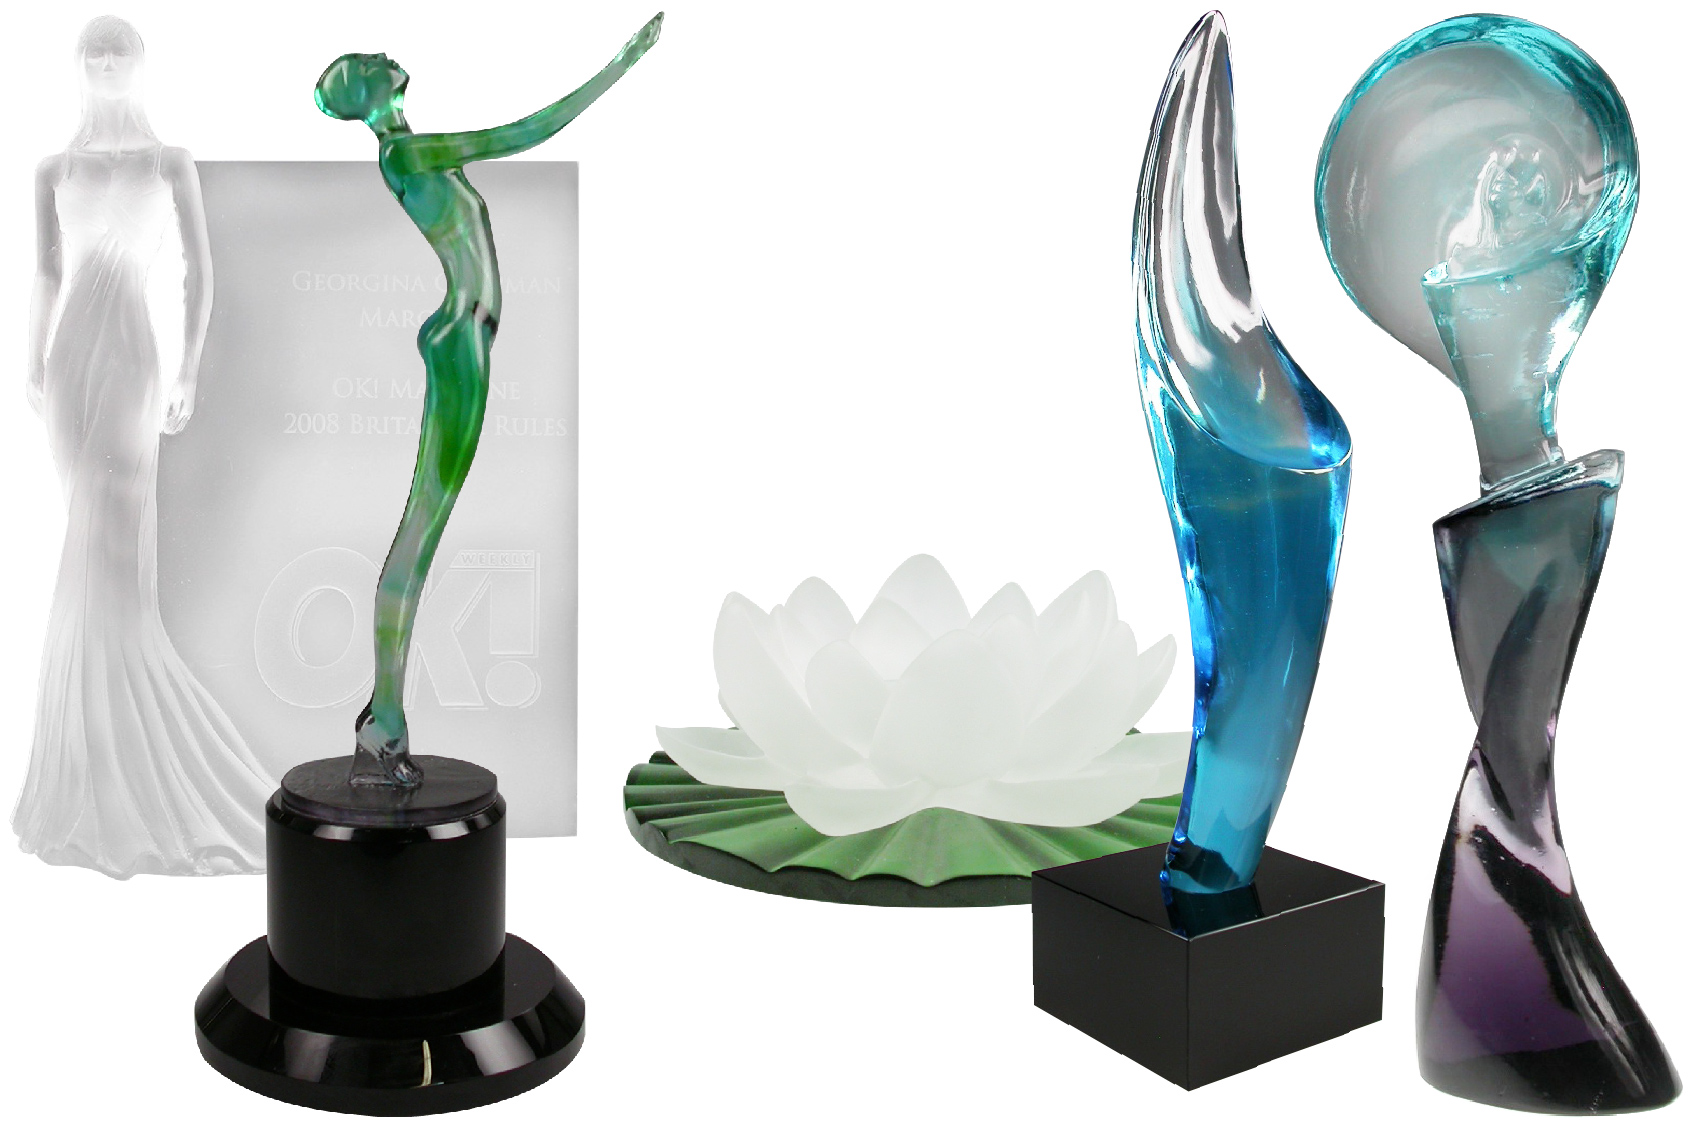 Five colorful pâte de verre sculptural trophies